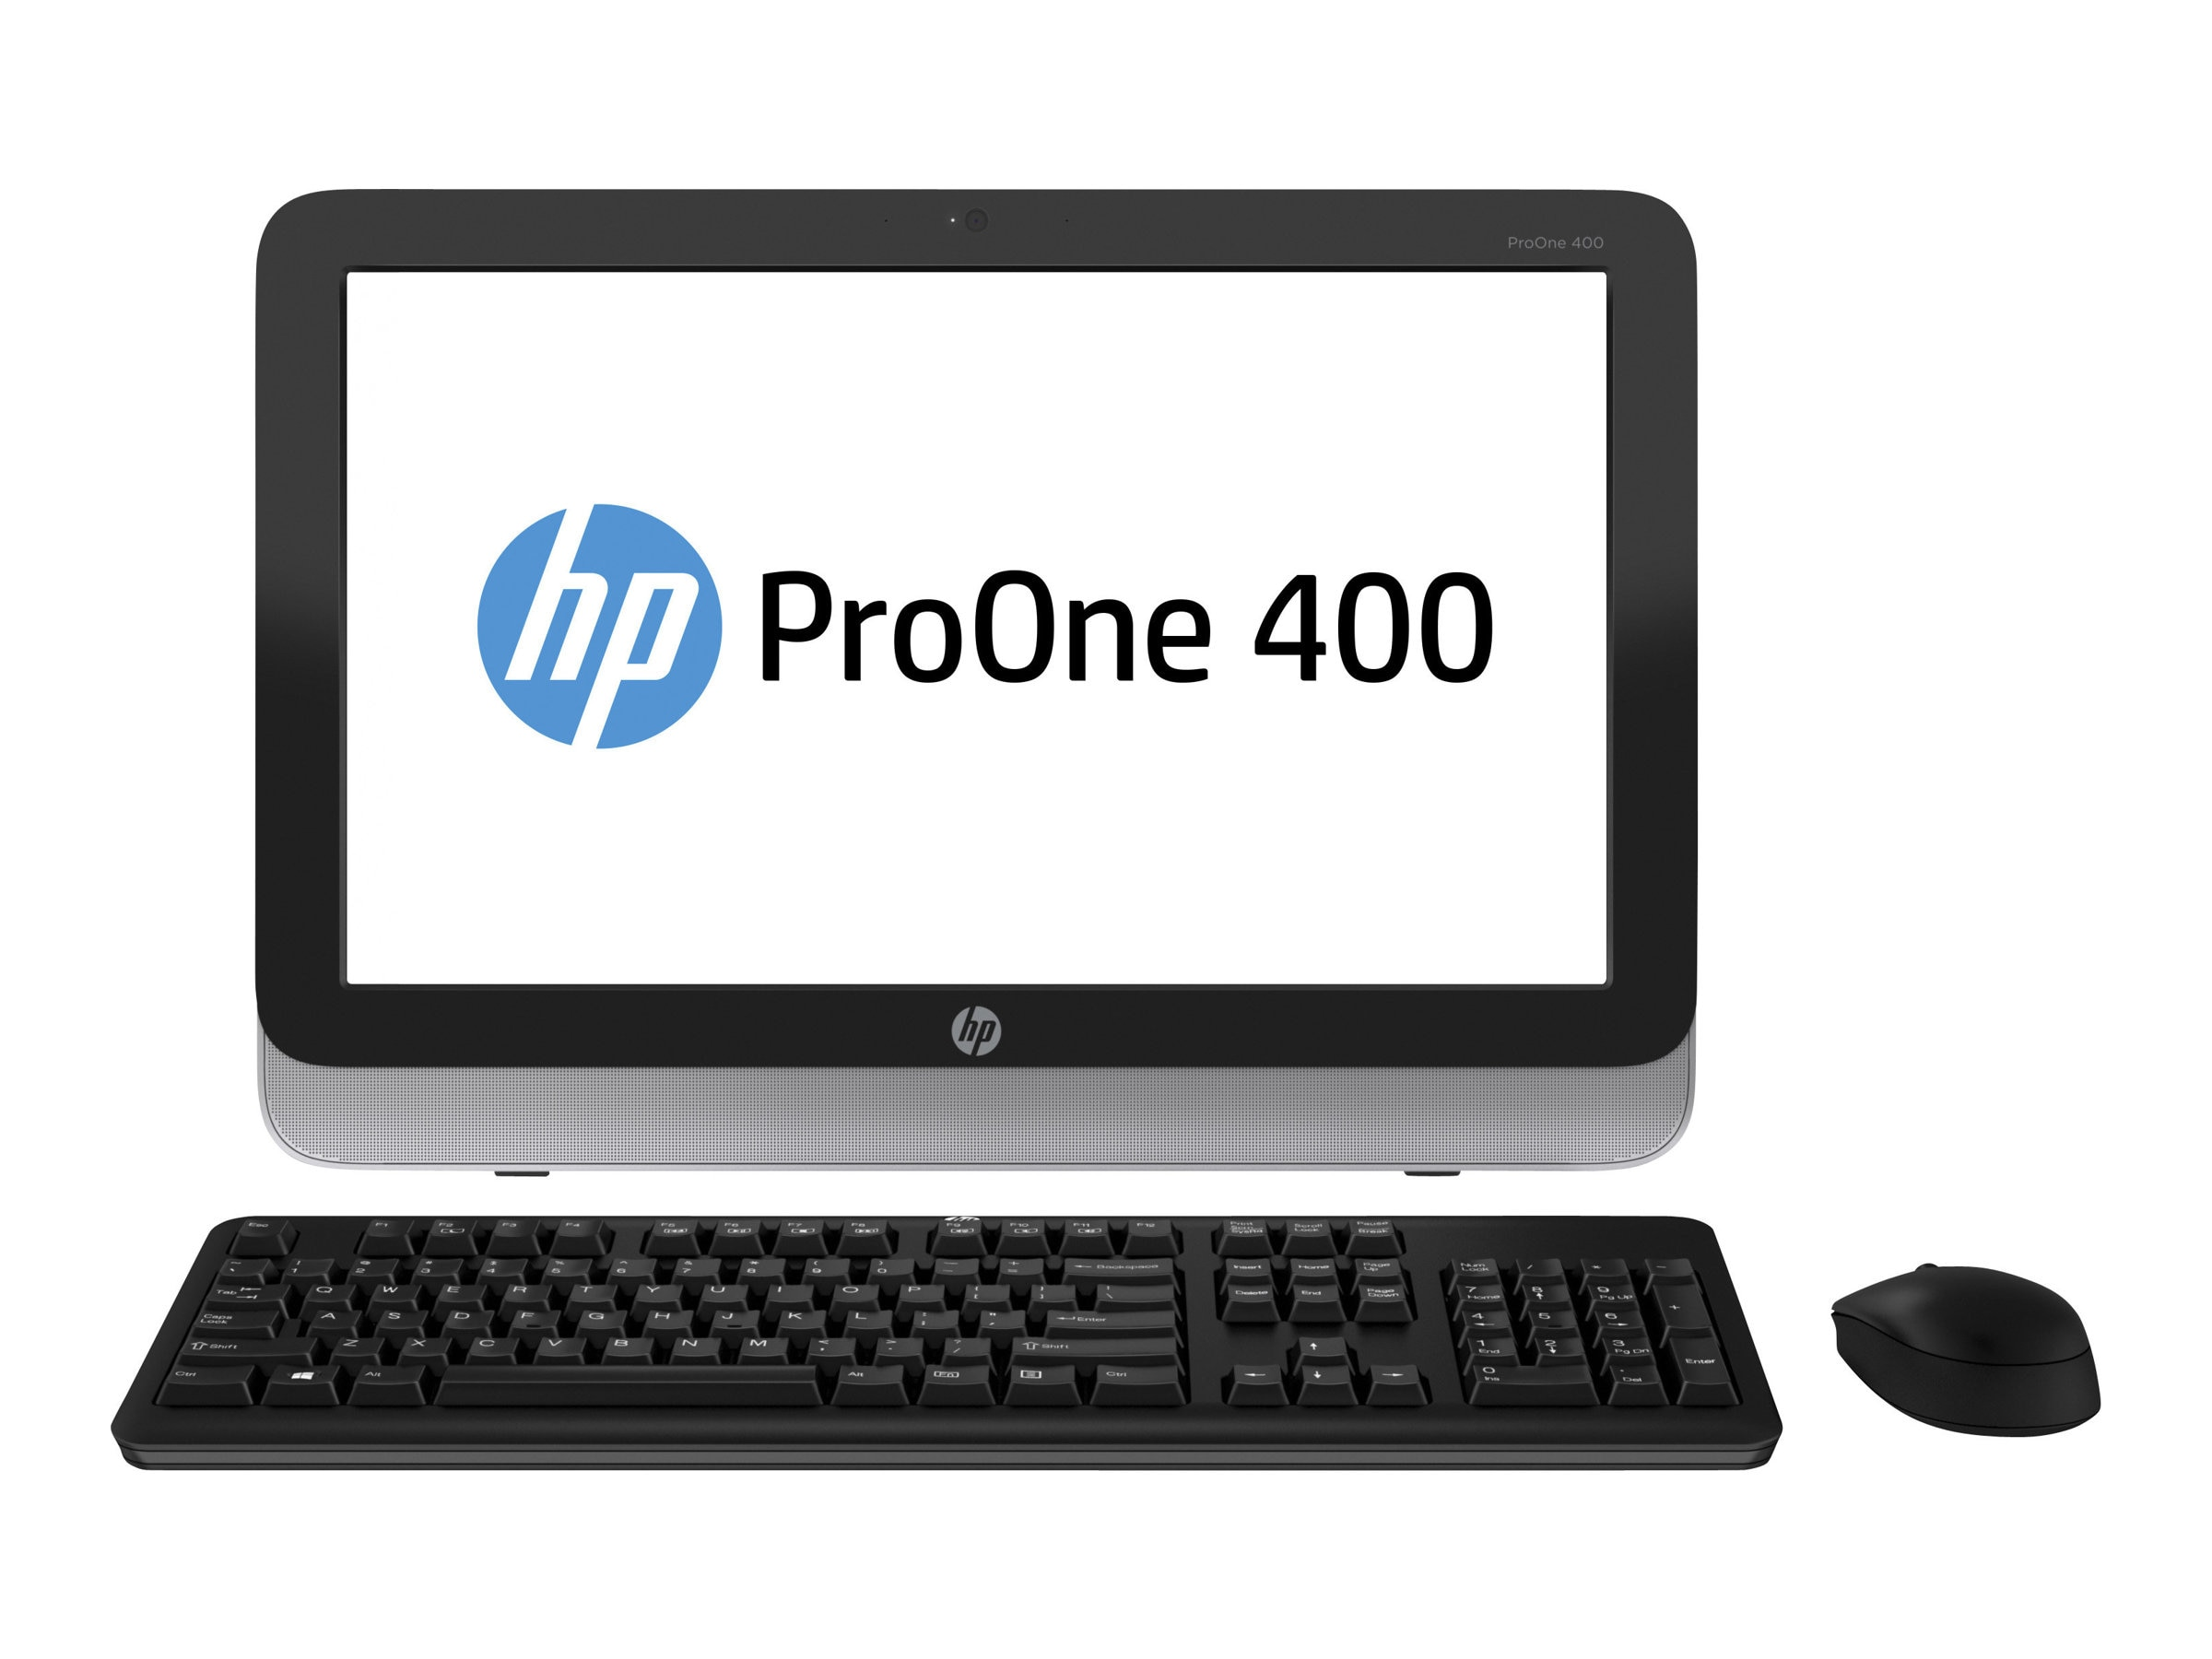 HP Smart Buy ProOne 400 G1 AIO Core i5-4590T 2.0GHz 4GB 500GB DVD+RW GbE abgn BT WC 19.5 HD W7P64-W10P, P0D21UT#ABA, 28184892, Desktops - All-in-One